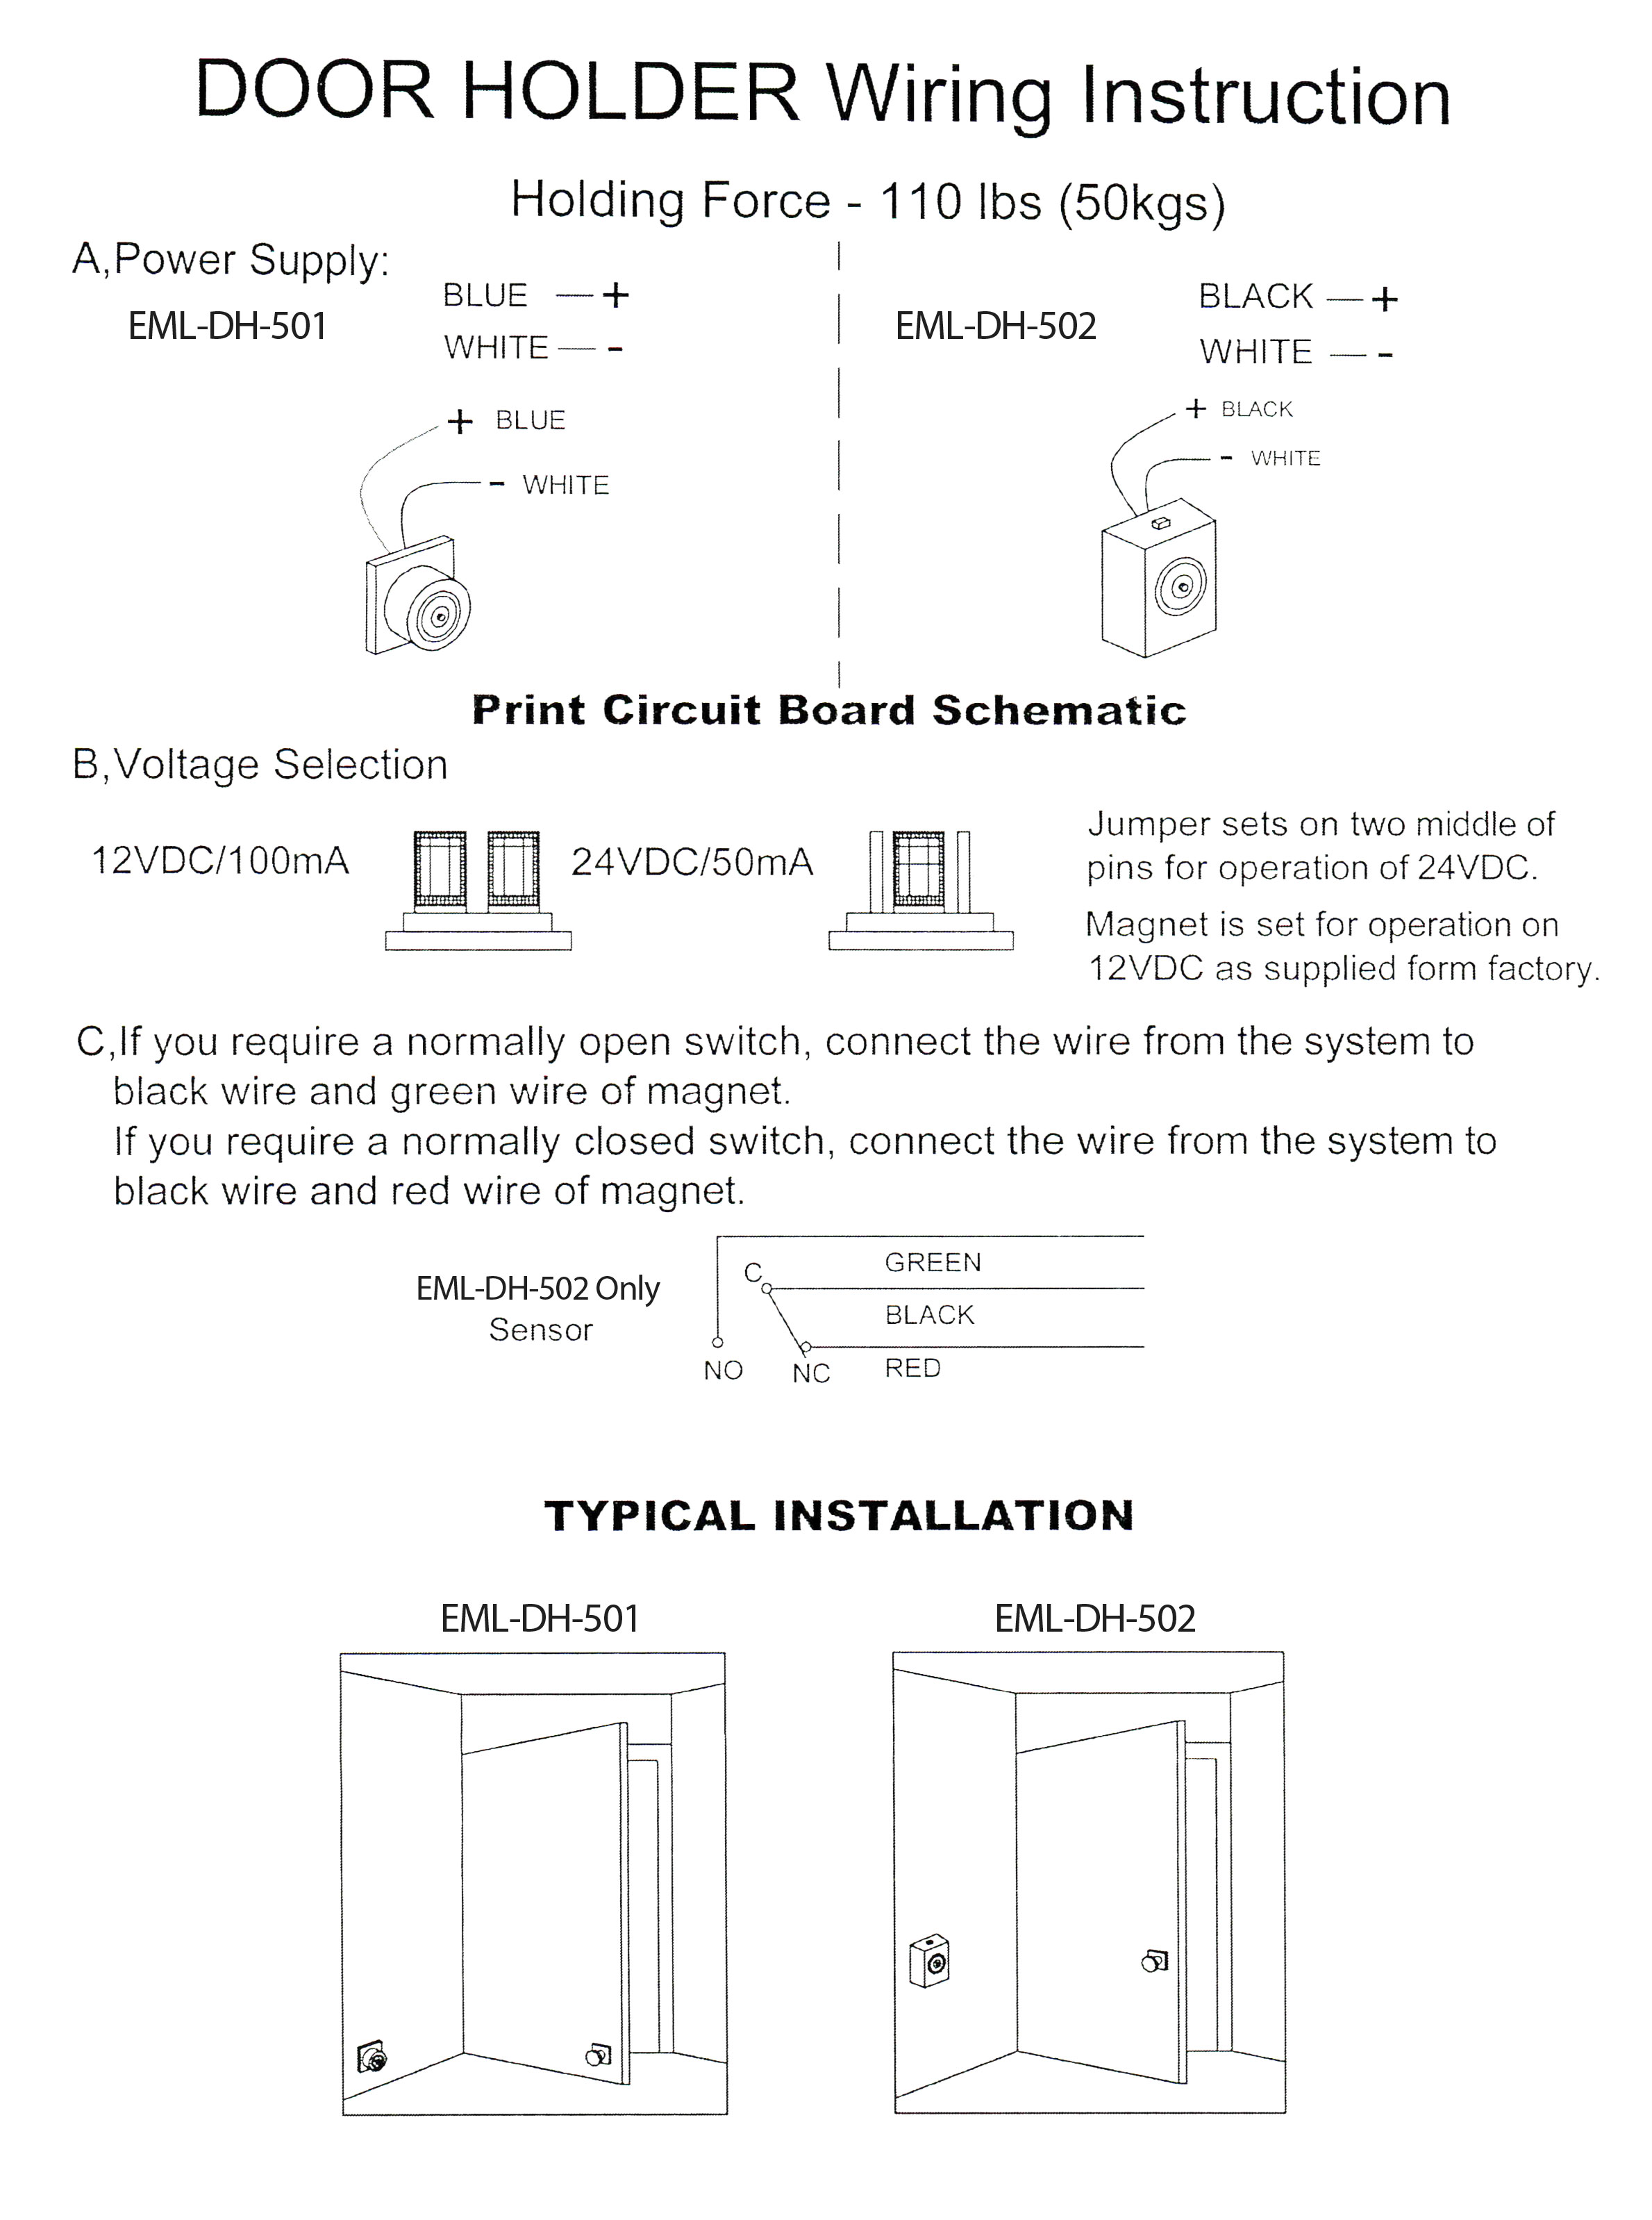 EML DH Diagram electromagnetic magnetic door holder with switch 100x70x40mm magnetic door holder wiring diagram at readyjetset.co